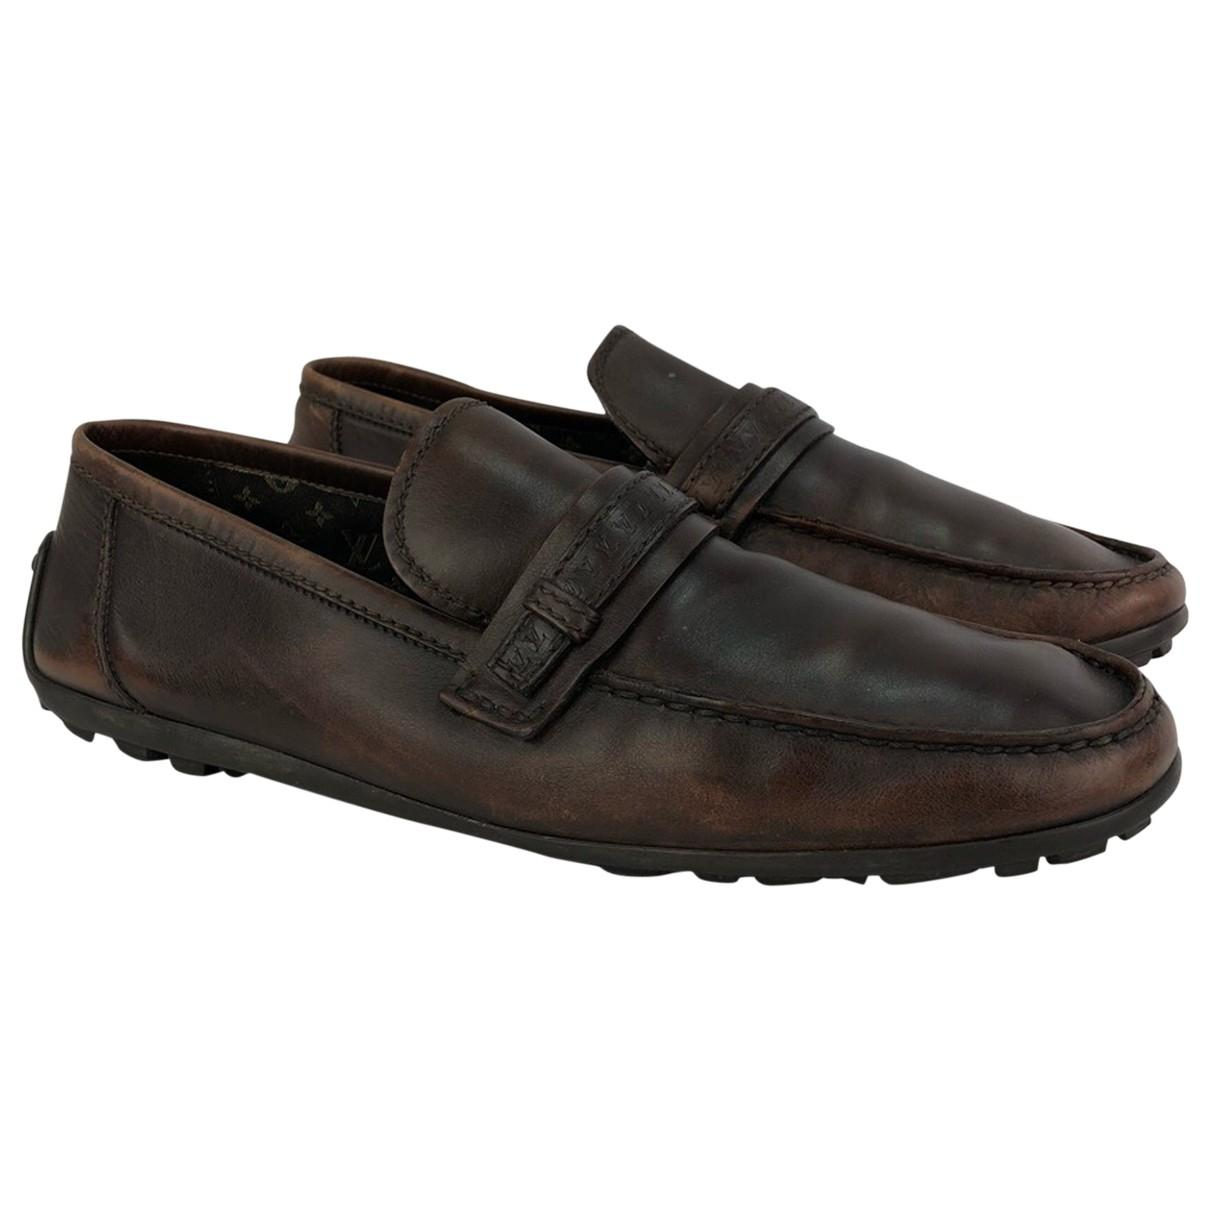 3ee4b242e804 Lyst - Louis Vuitton Leather Flats in Brown for Men